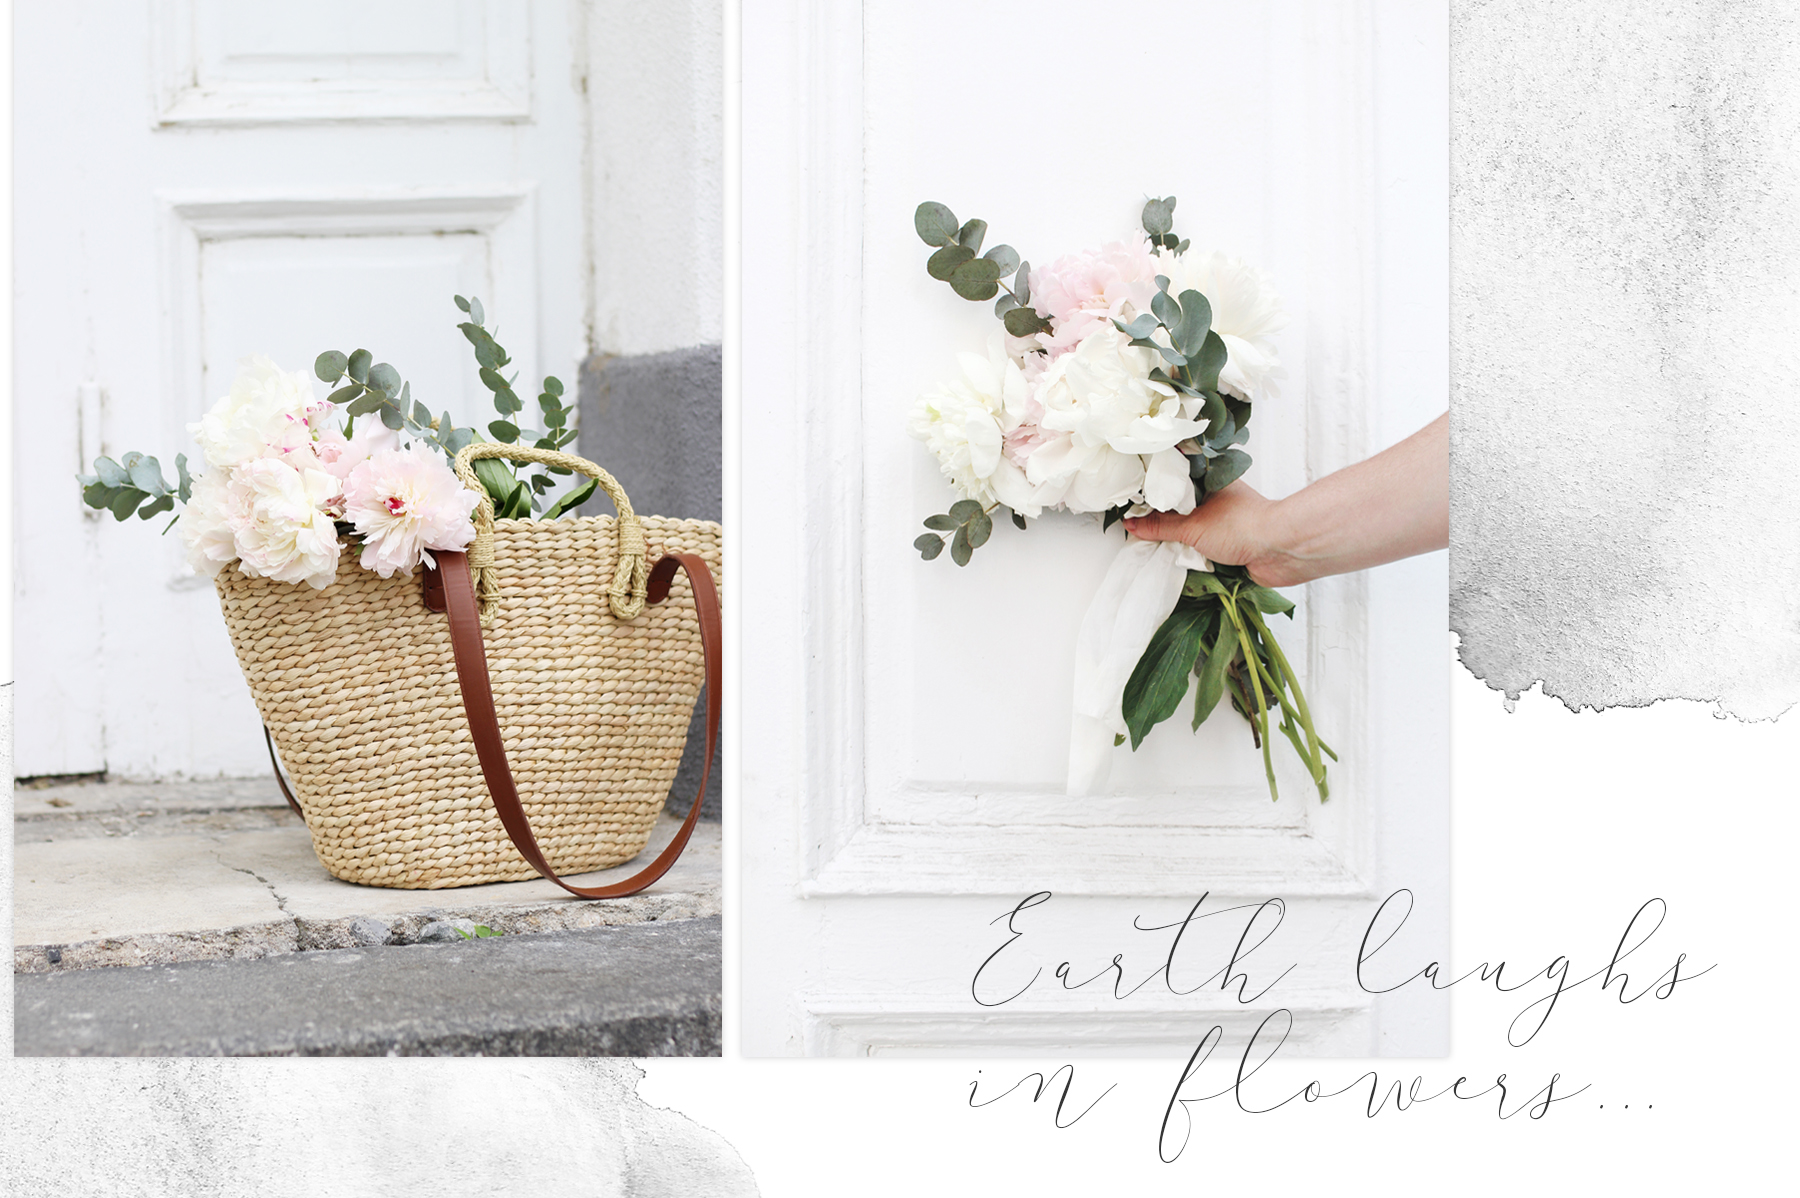 Vintage peony wedding mockups & stock photo bundle example image 6